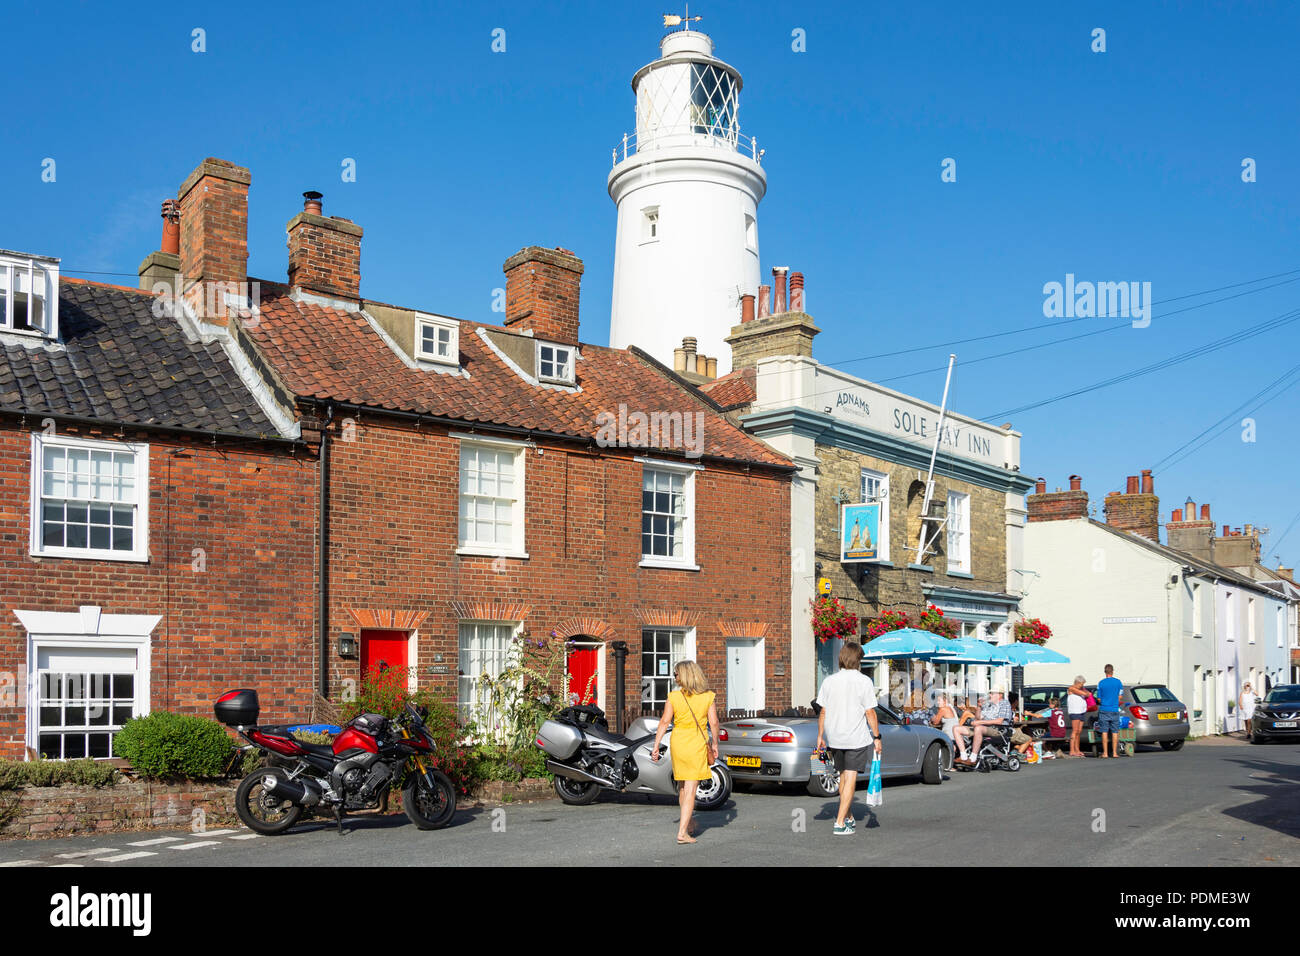 Period cottages, Sole Bay Inn and Lighthouse, East Green, Southwold, Suffolk, England, United Kingdom - Stock Image